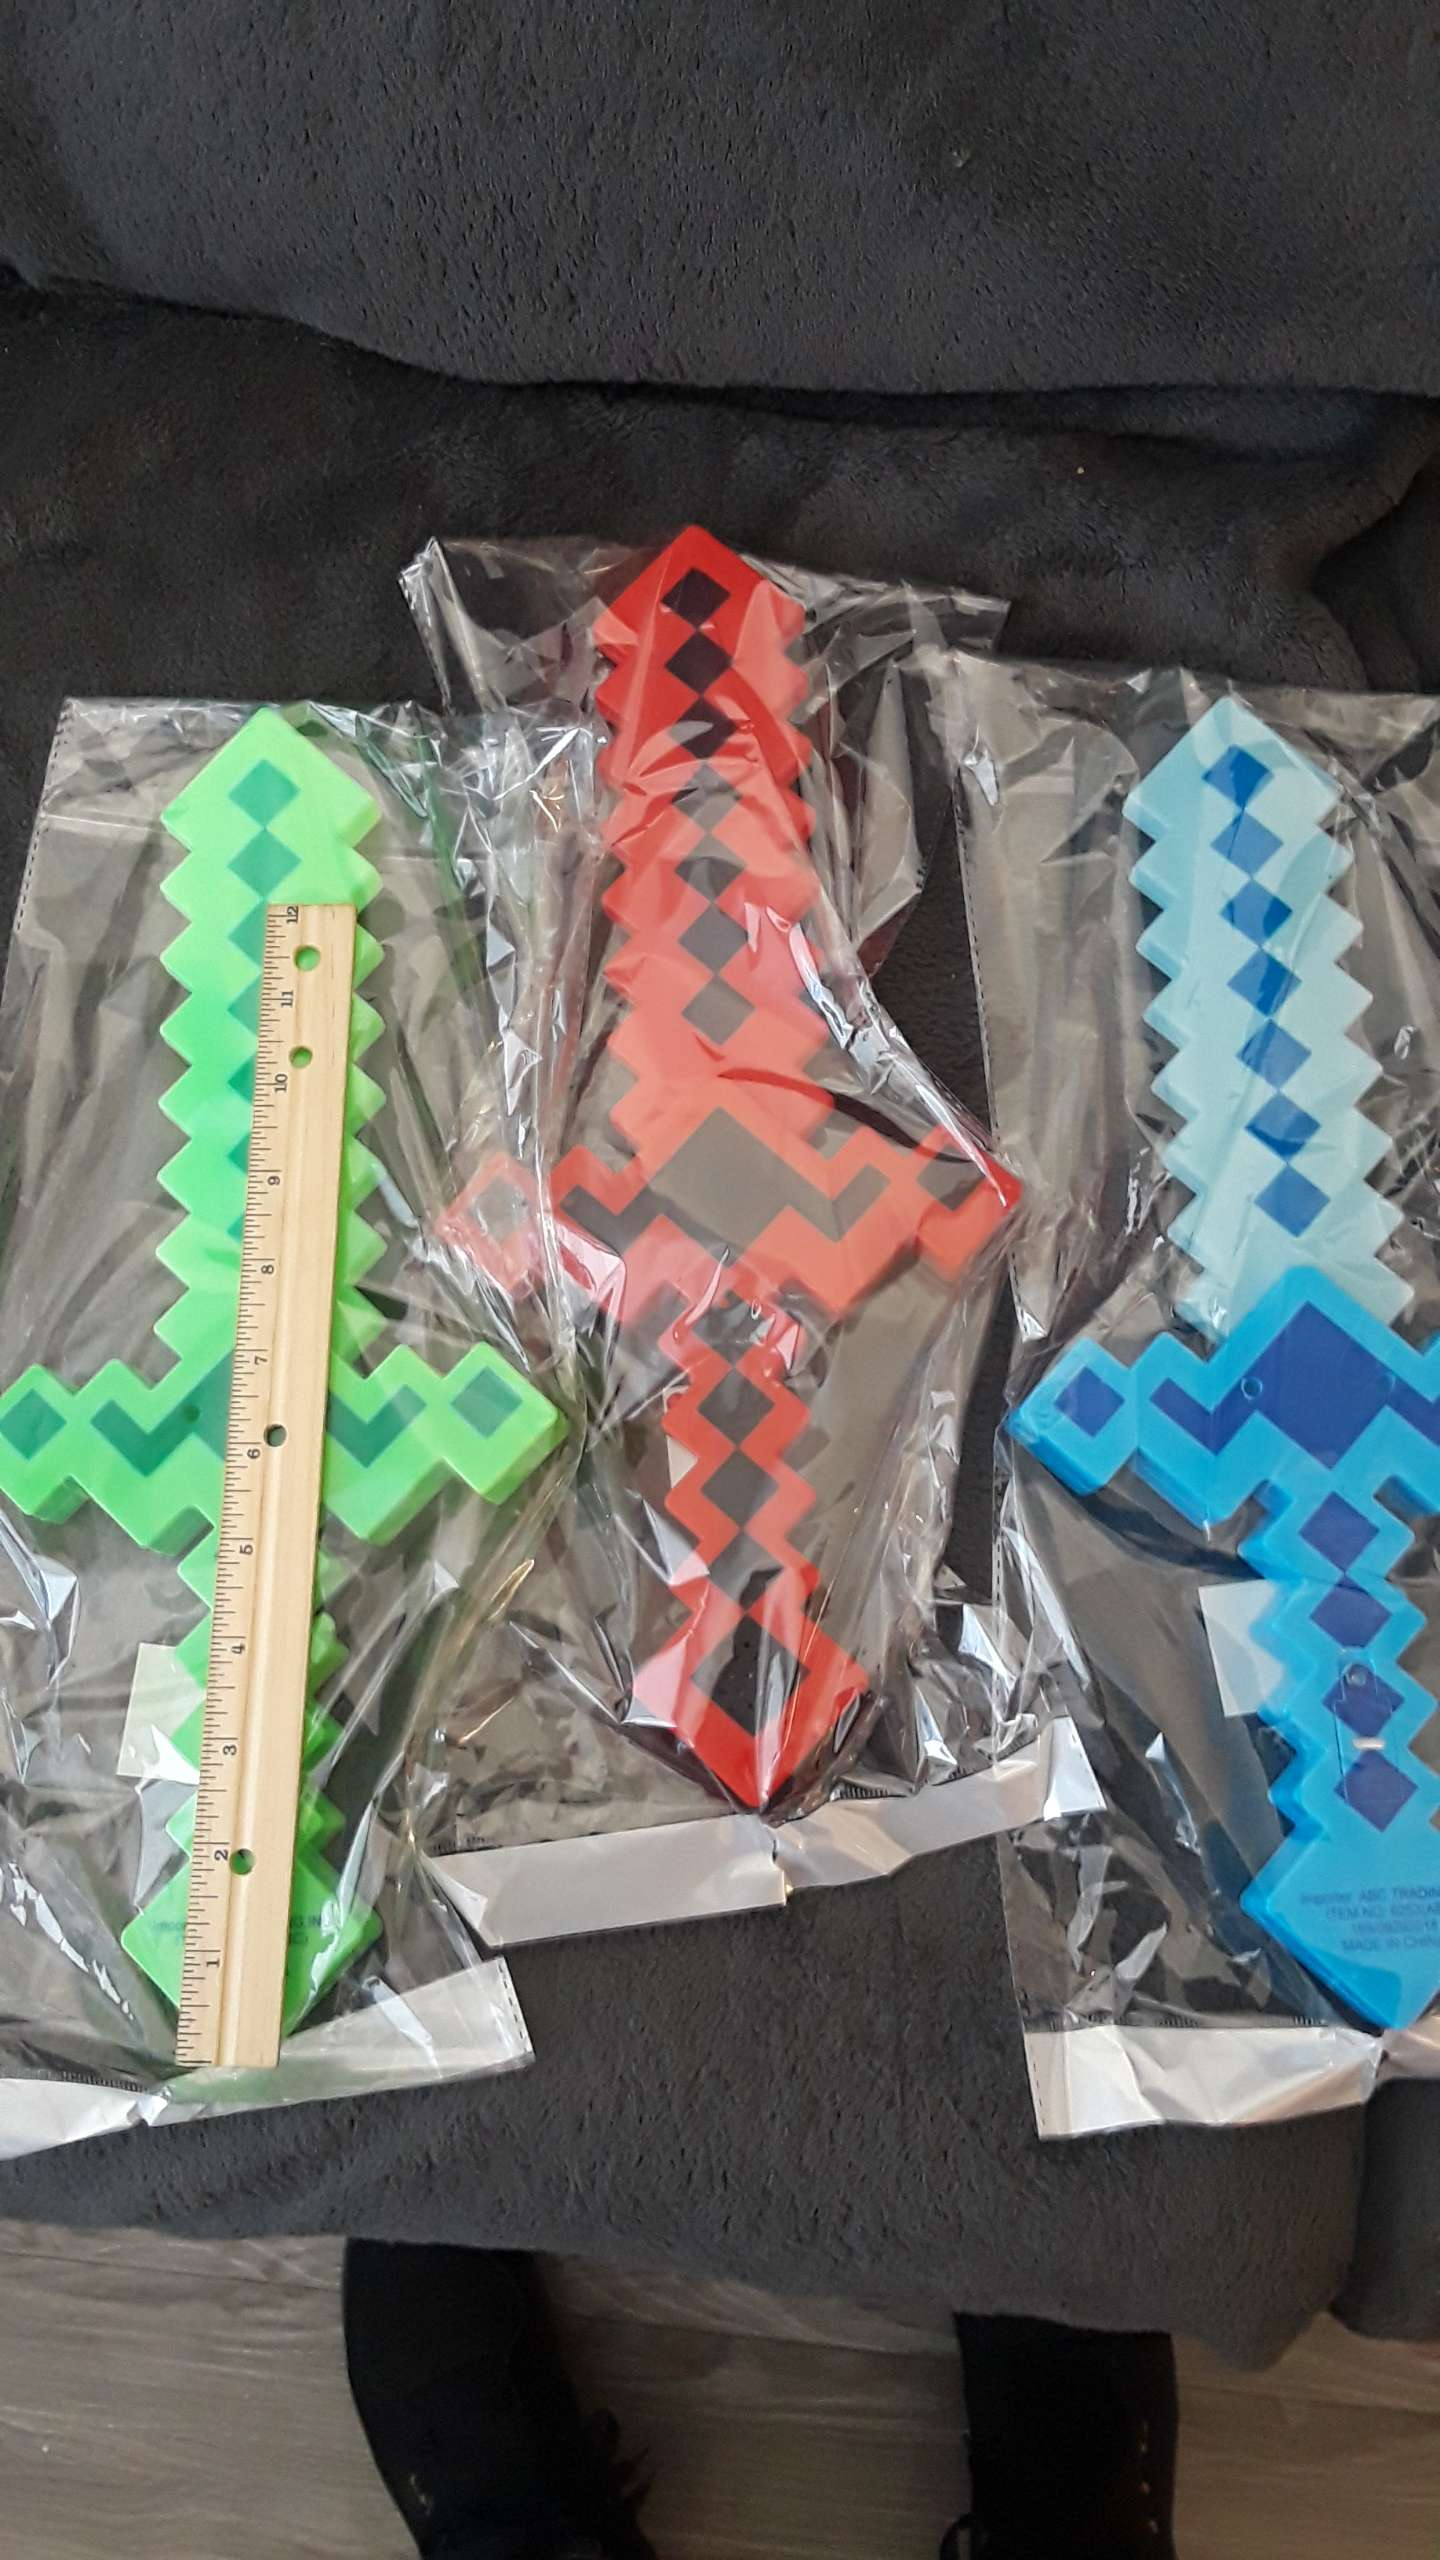 Photo New Light Up Swords with Sound Fx! // Selling Quick// $5 Each// Price is Firm